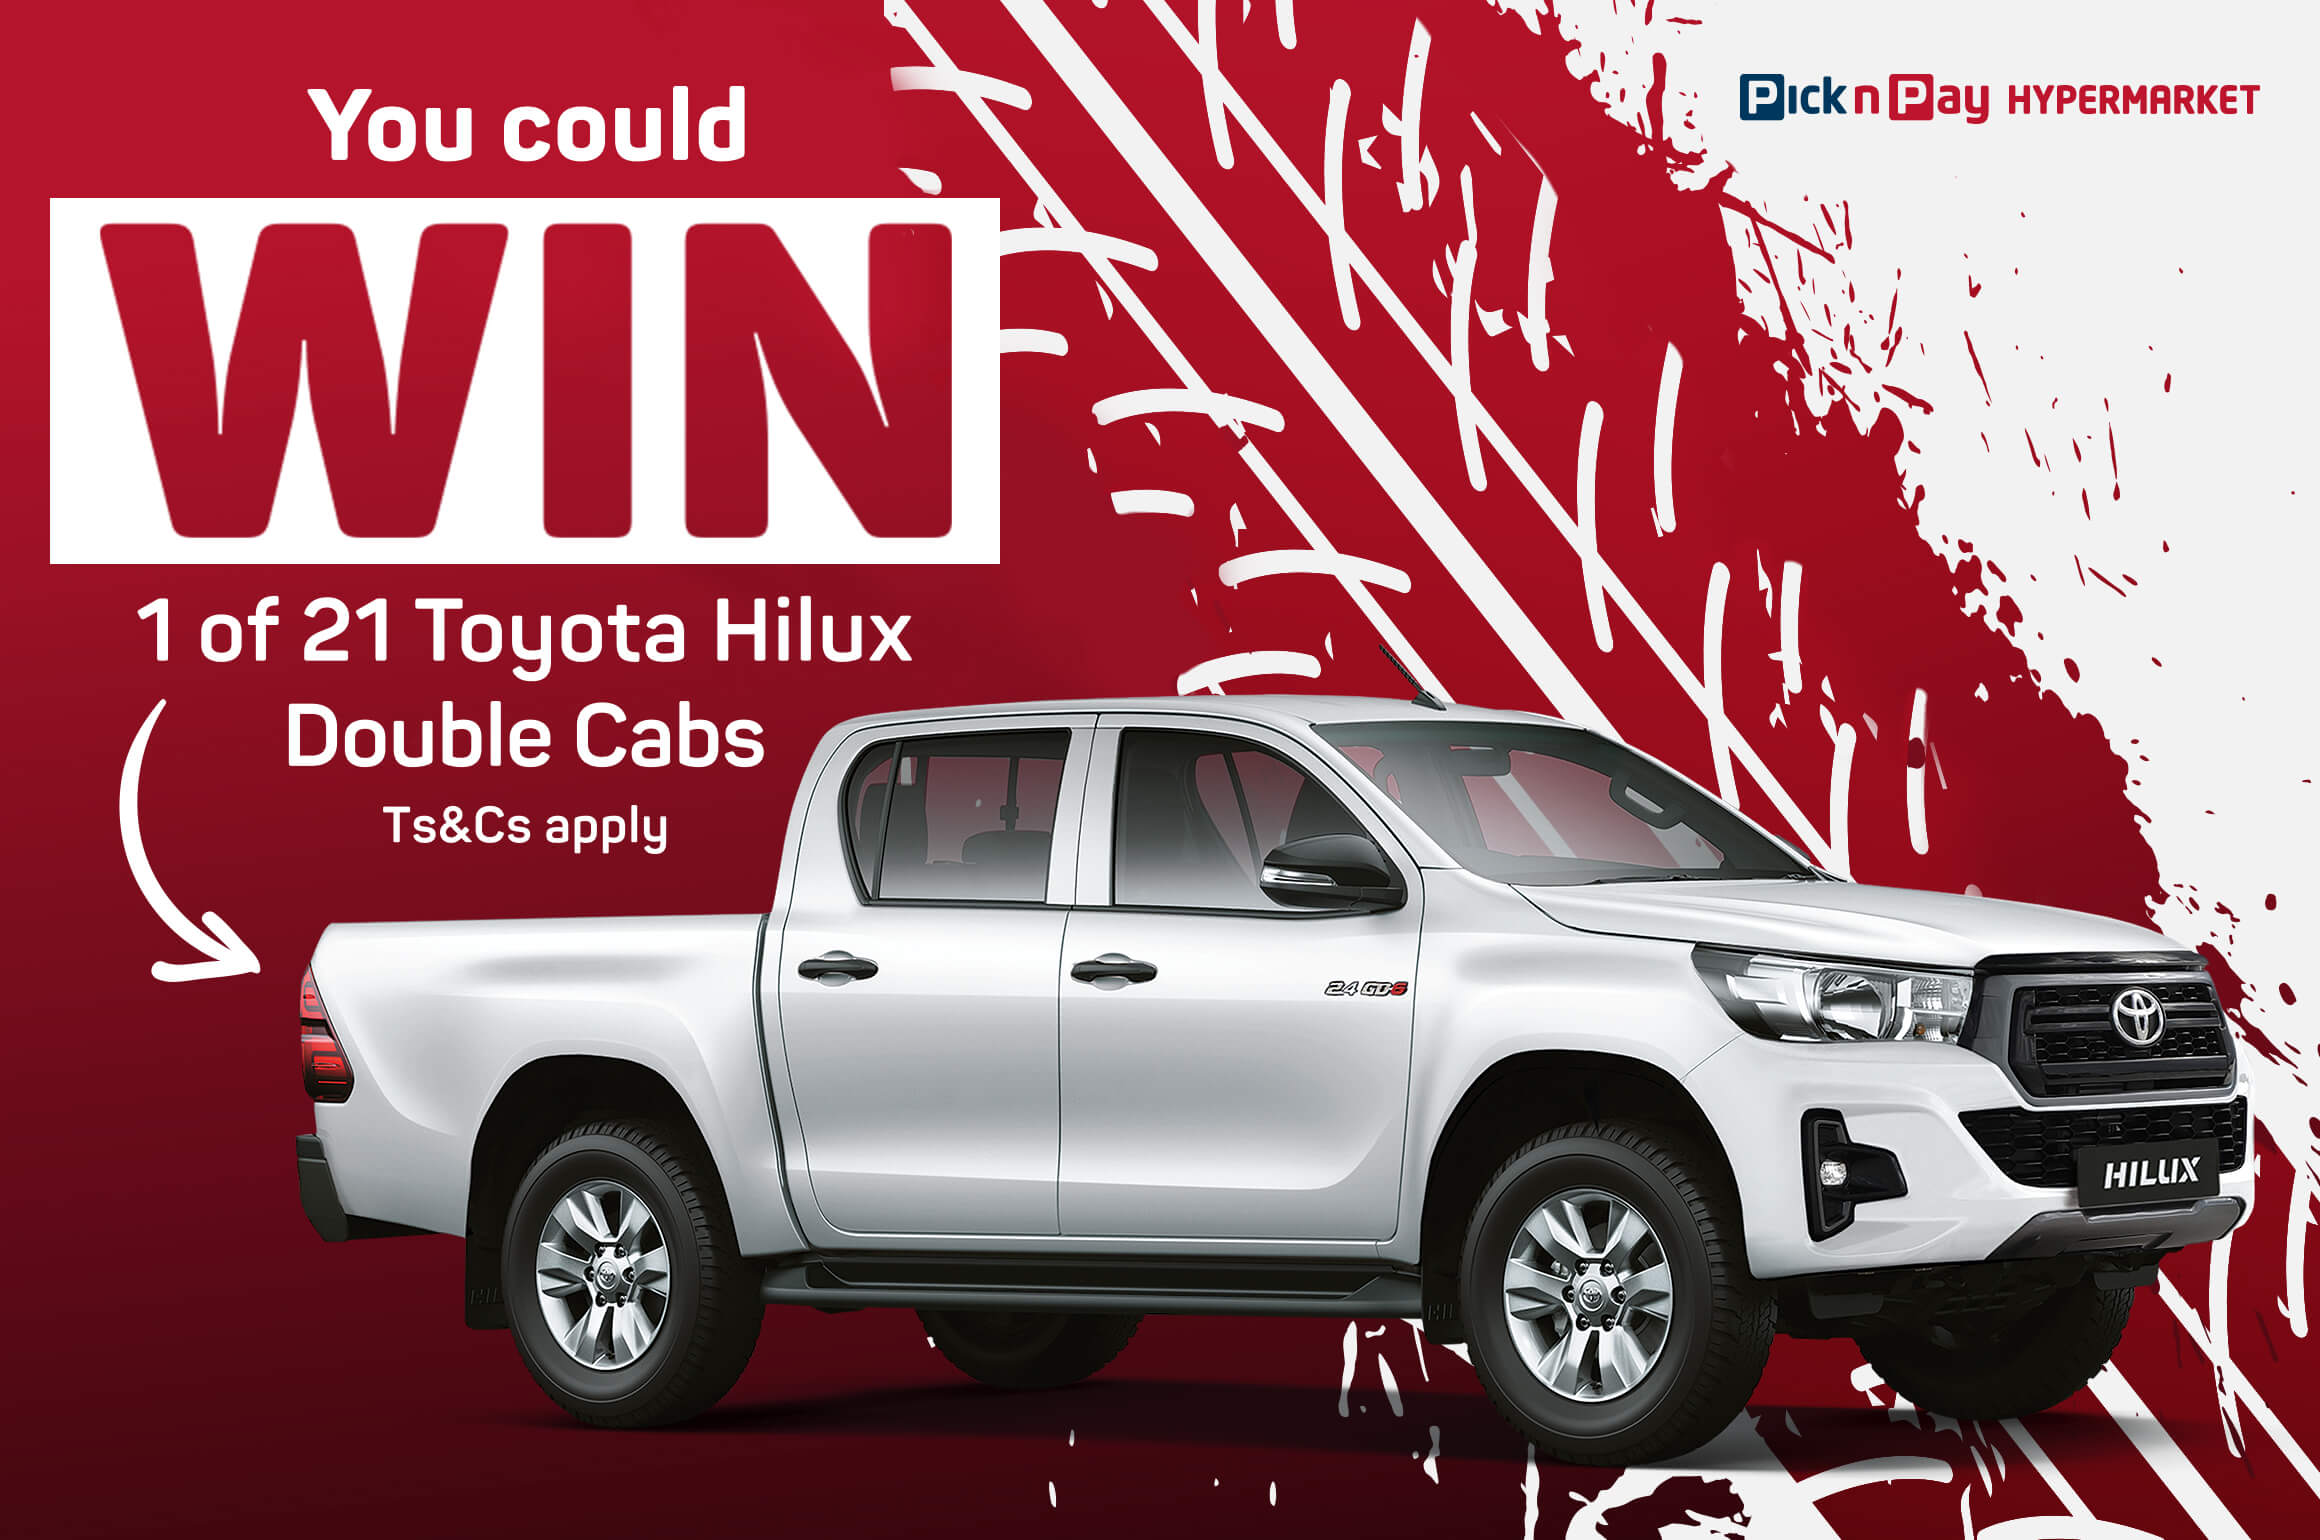 You could WIN 1 of 21 Toyota Hilux Double Cabs